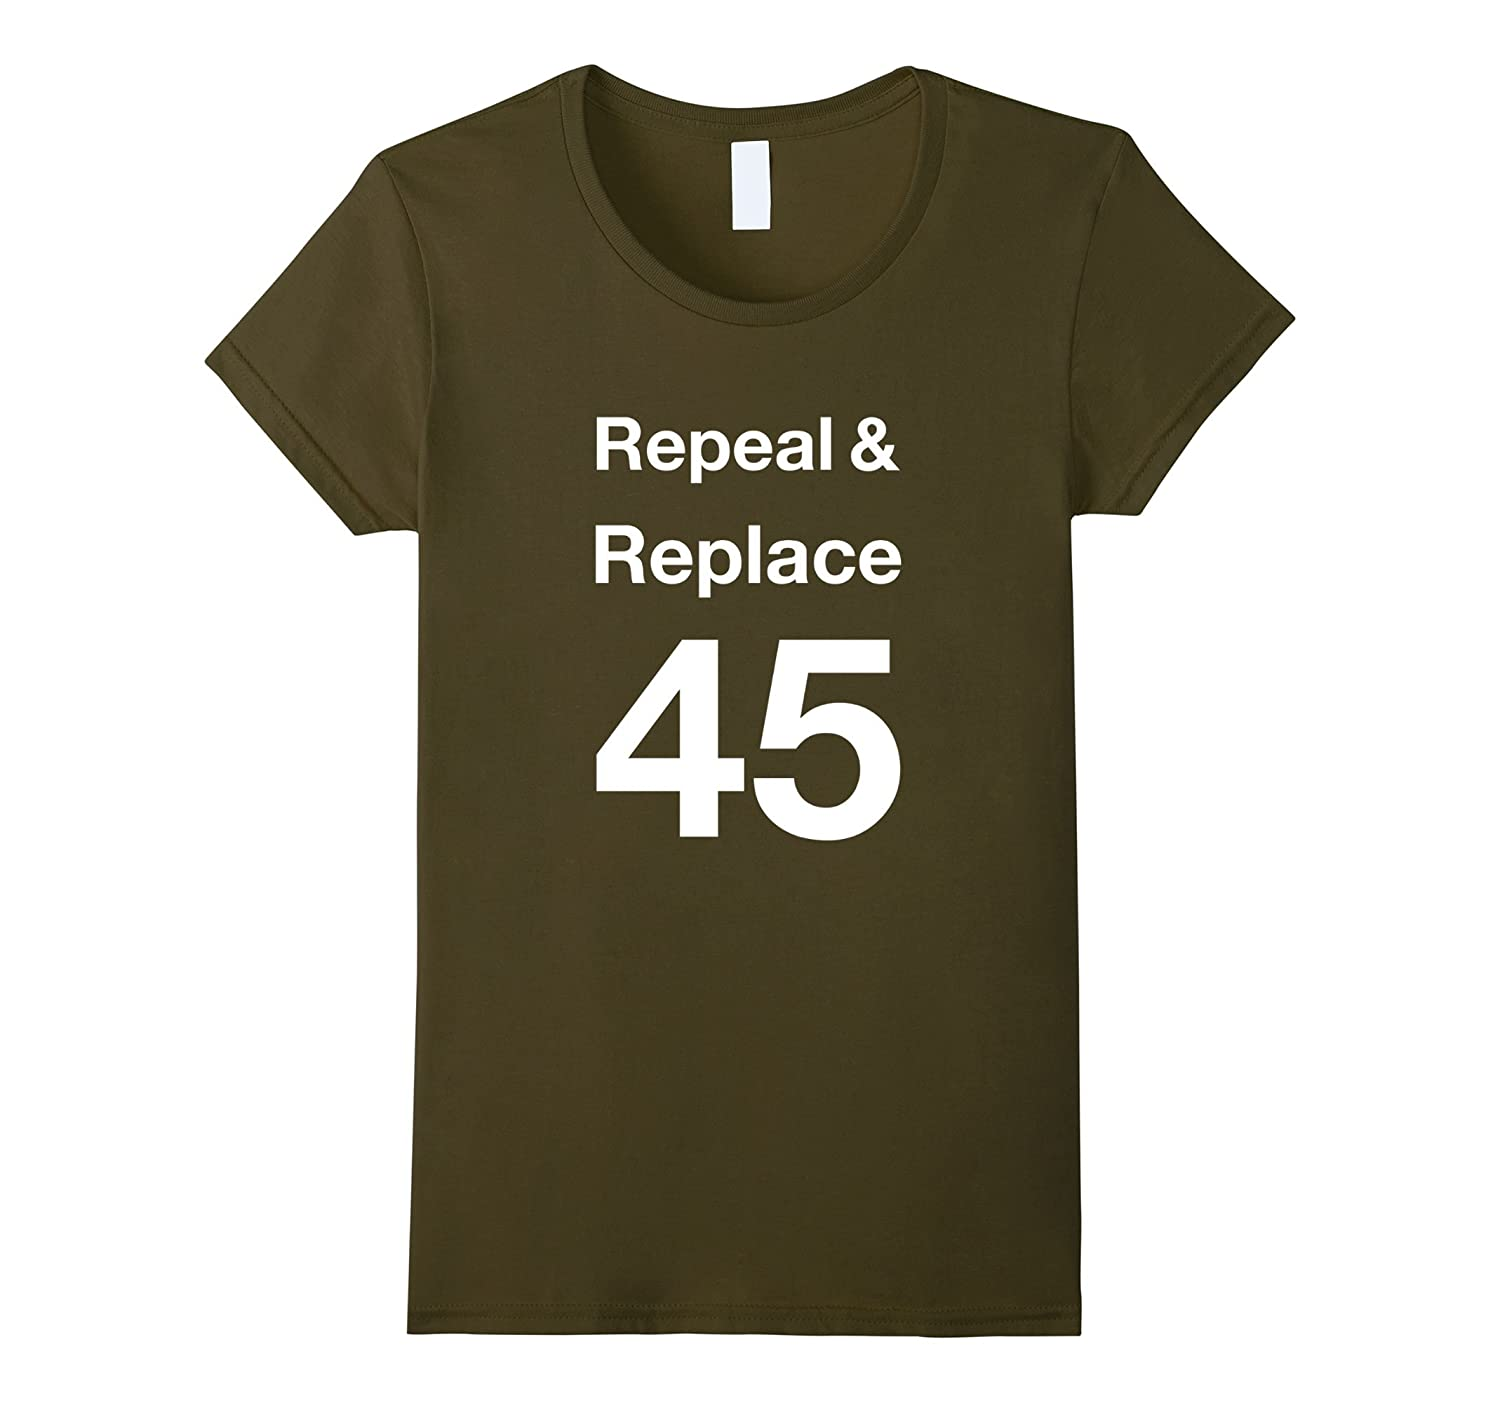 Repeal & Replace Our 45th President Trump T-Shirt